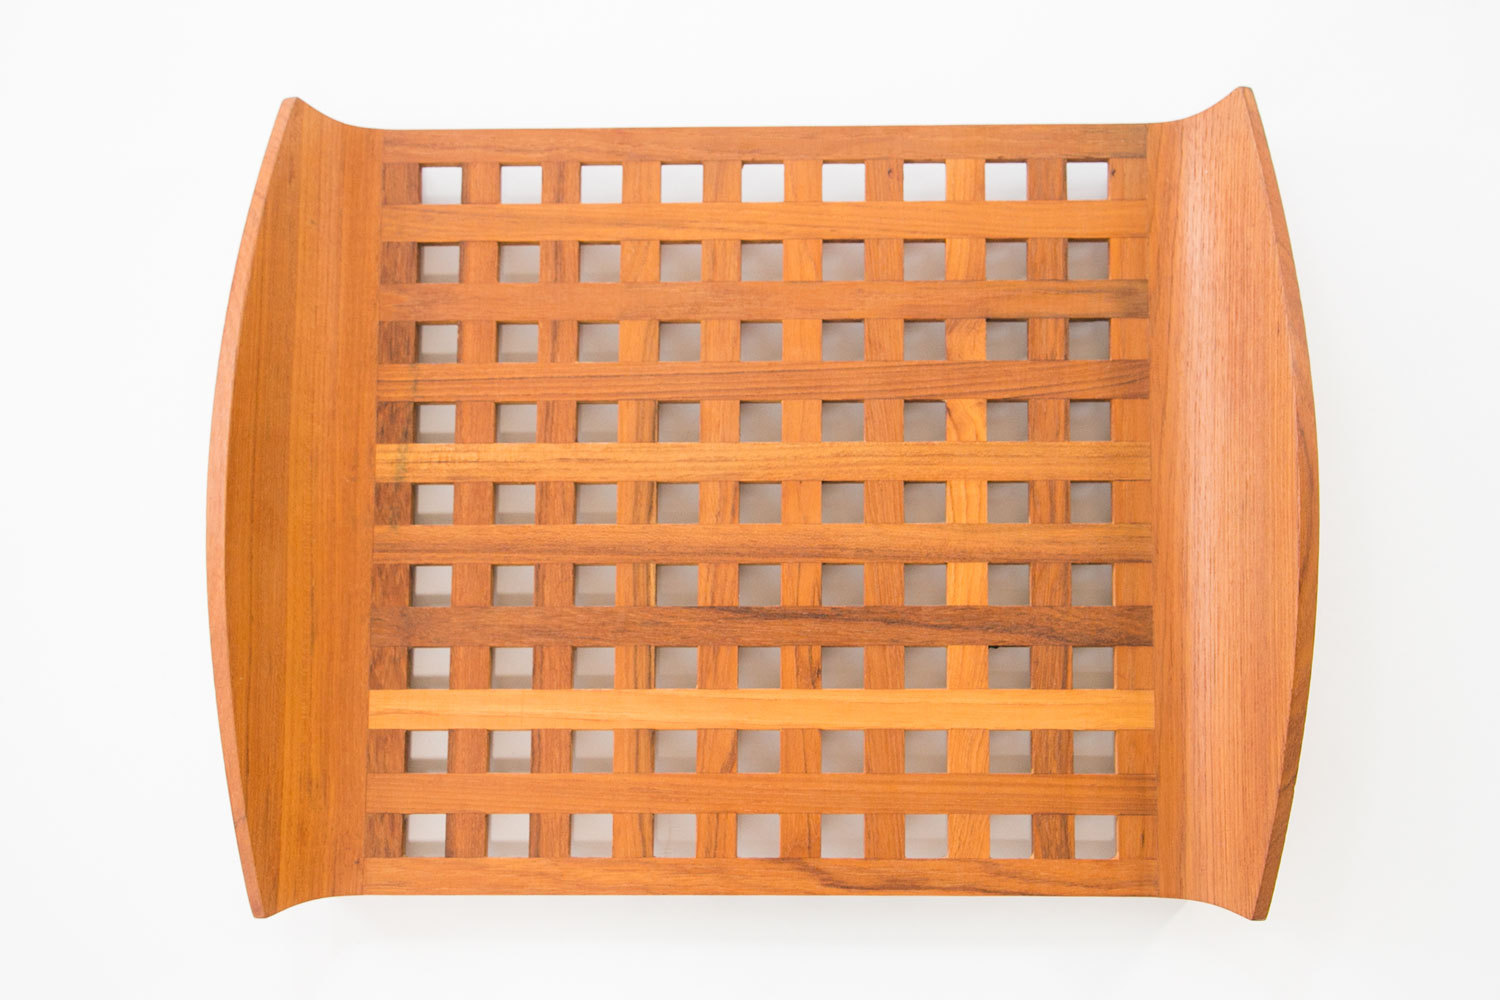 Vintage Dansk Designs 1960's JHQ Teak Lattice Serving Tray // Jens Quistgaard // Danish Modern // MCM // Mid Century Modern // Kitchenware